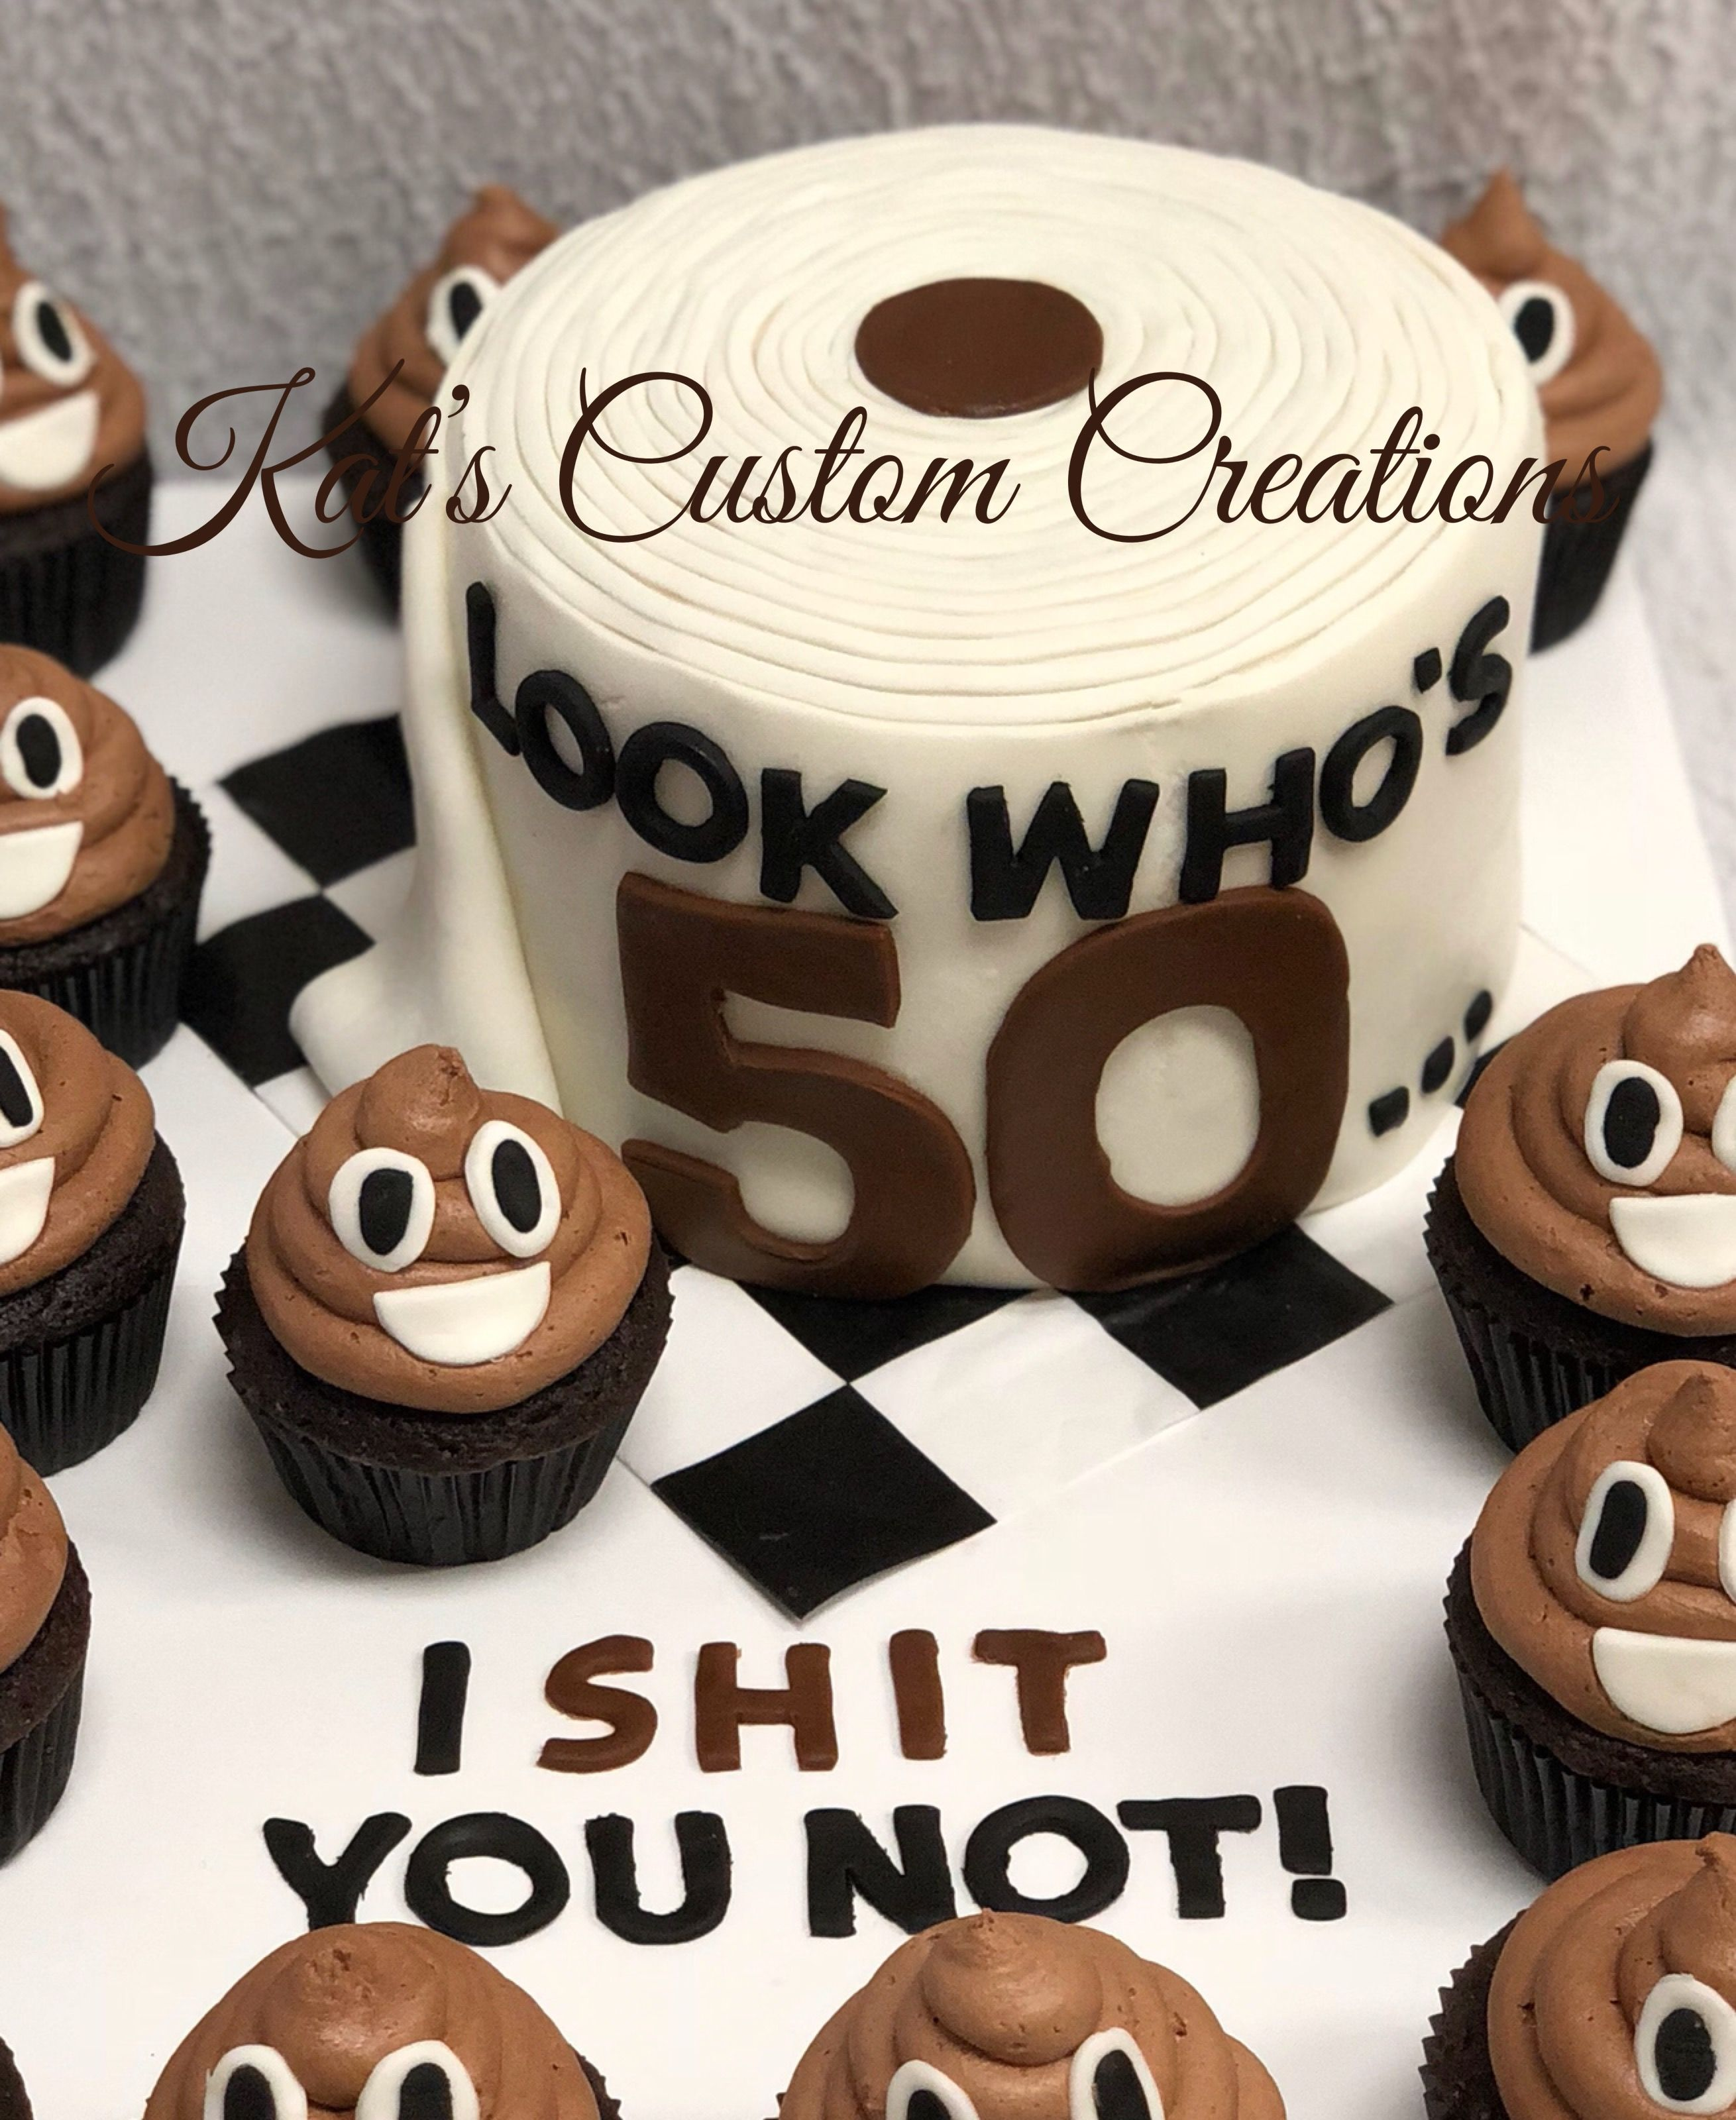 Toilet Paper Cake With Emoji Poop Cupcakes Funny 50th Birthday Cakes